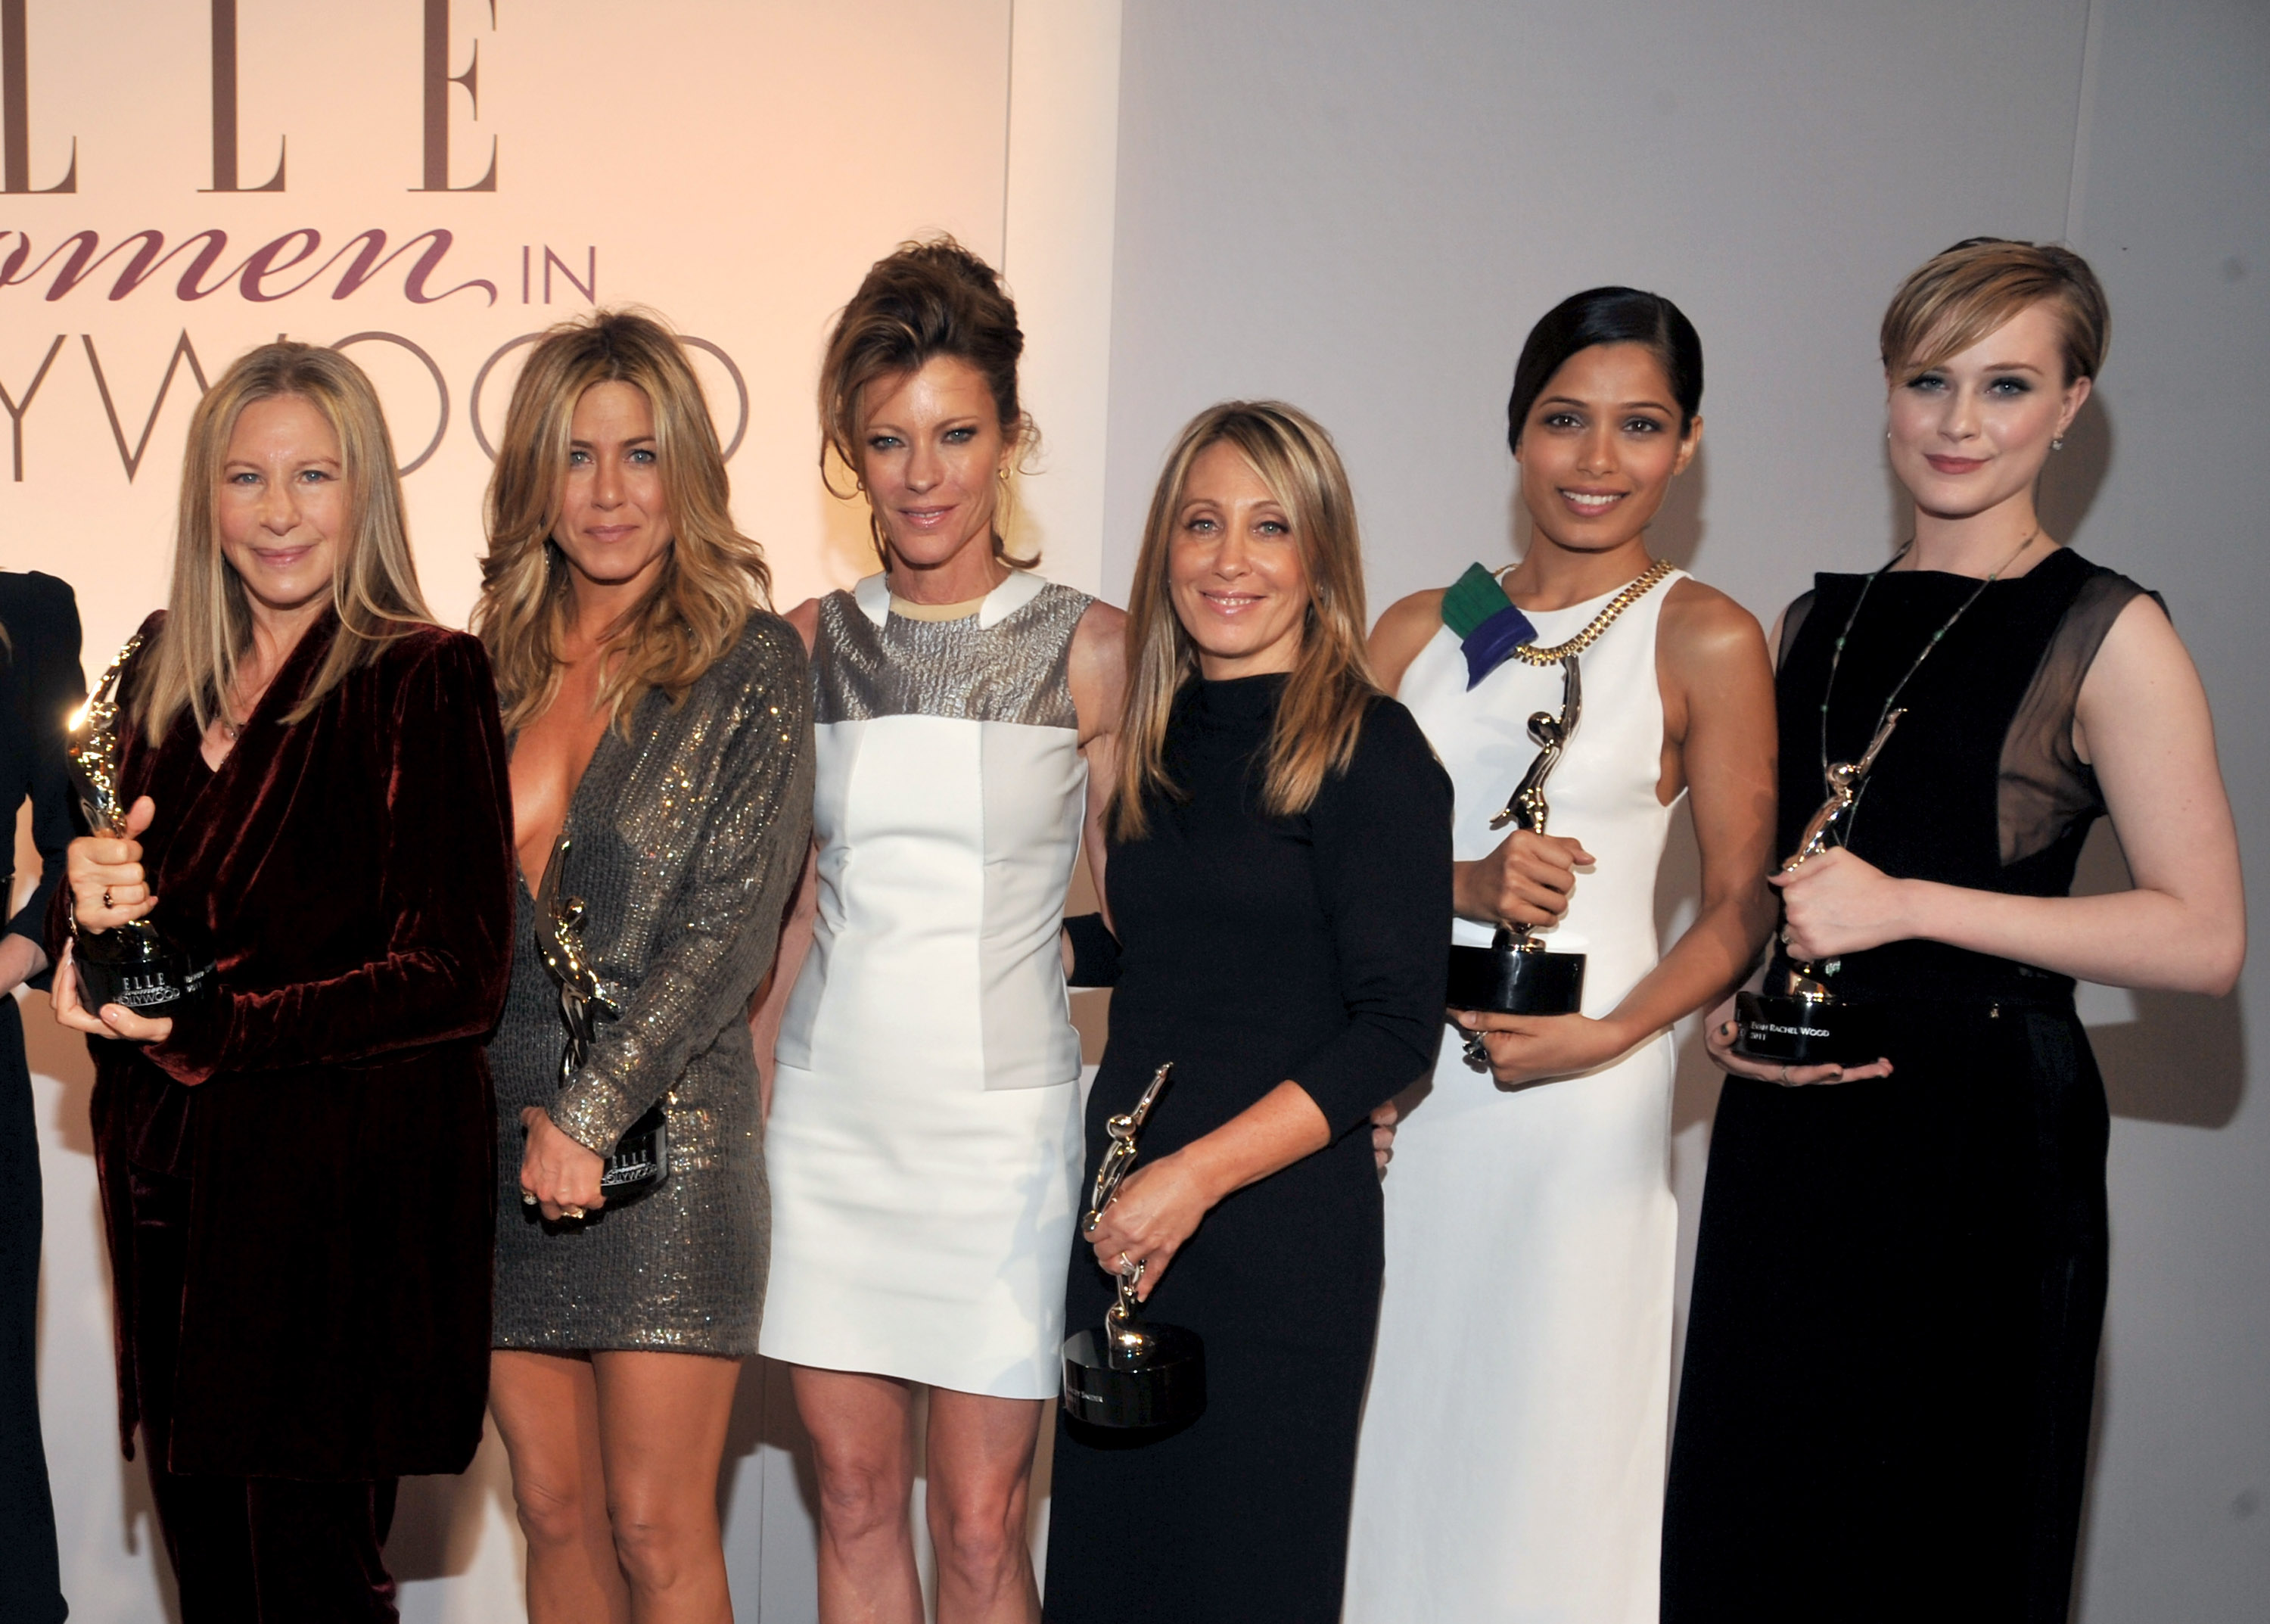 Elle's Robbie Myers honored Barbra Streisand, Jennifer Aniston, Freida Pinto, and Evan Rachel Wood in LA.